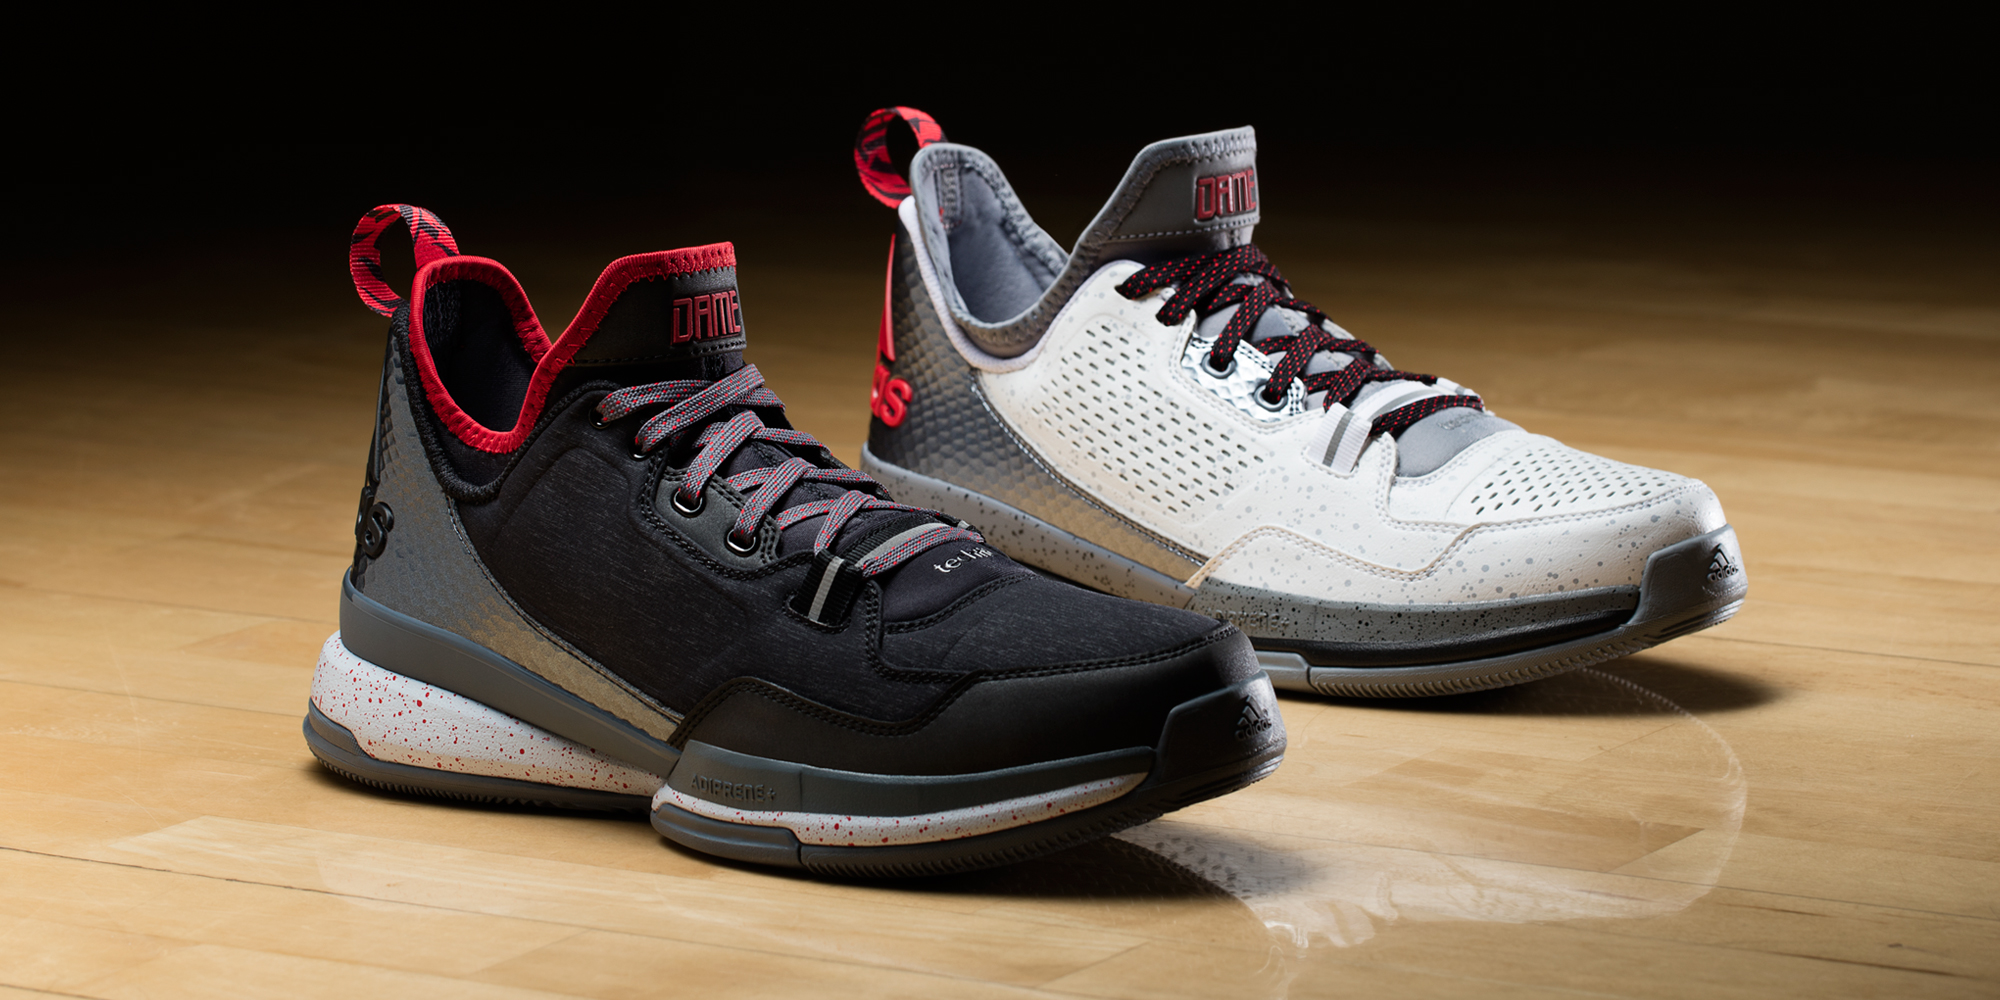 da0f6bf0dc6 Damian Lillard Gears up for The Season with New Home and Away ...